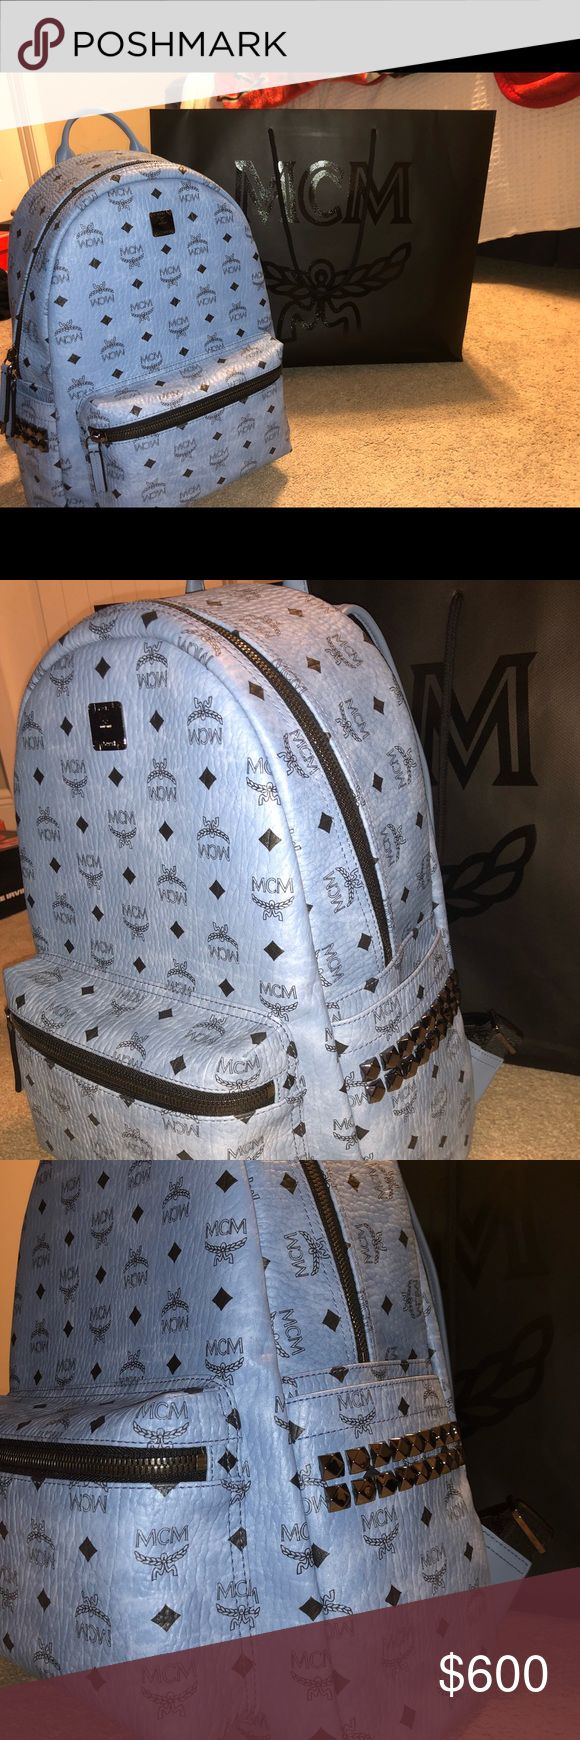 Brand New MCM Light Blue Backpack Light blue leather MCM backpack, brand new with all packaging. Price is negotiable so make offers. MCM Bags Backpacks